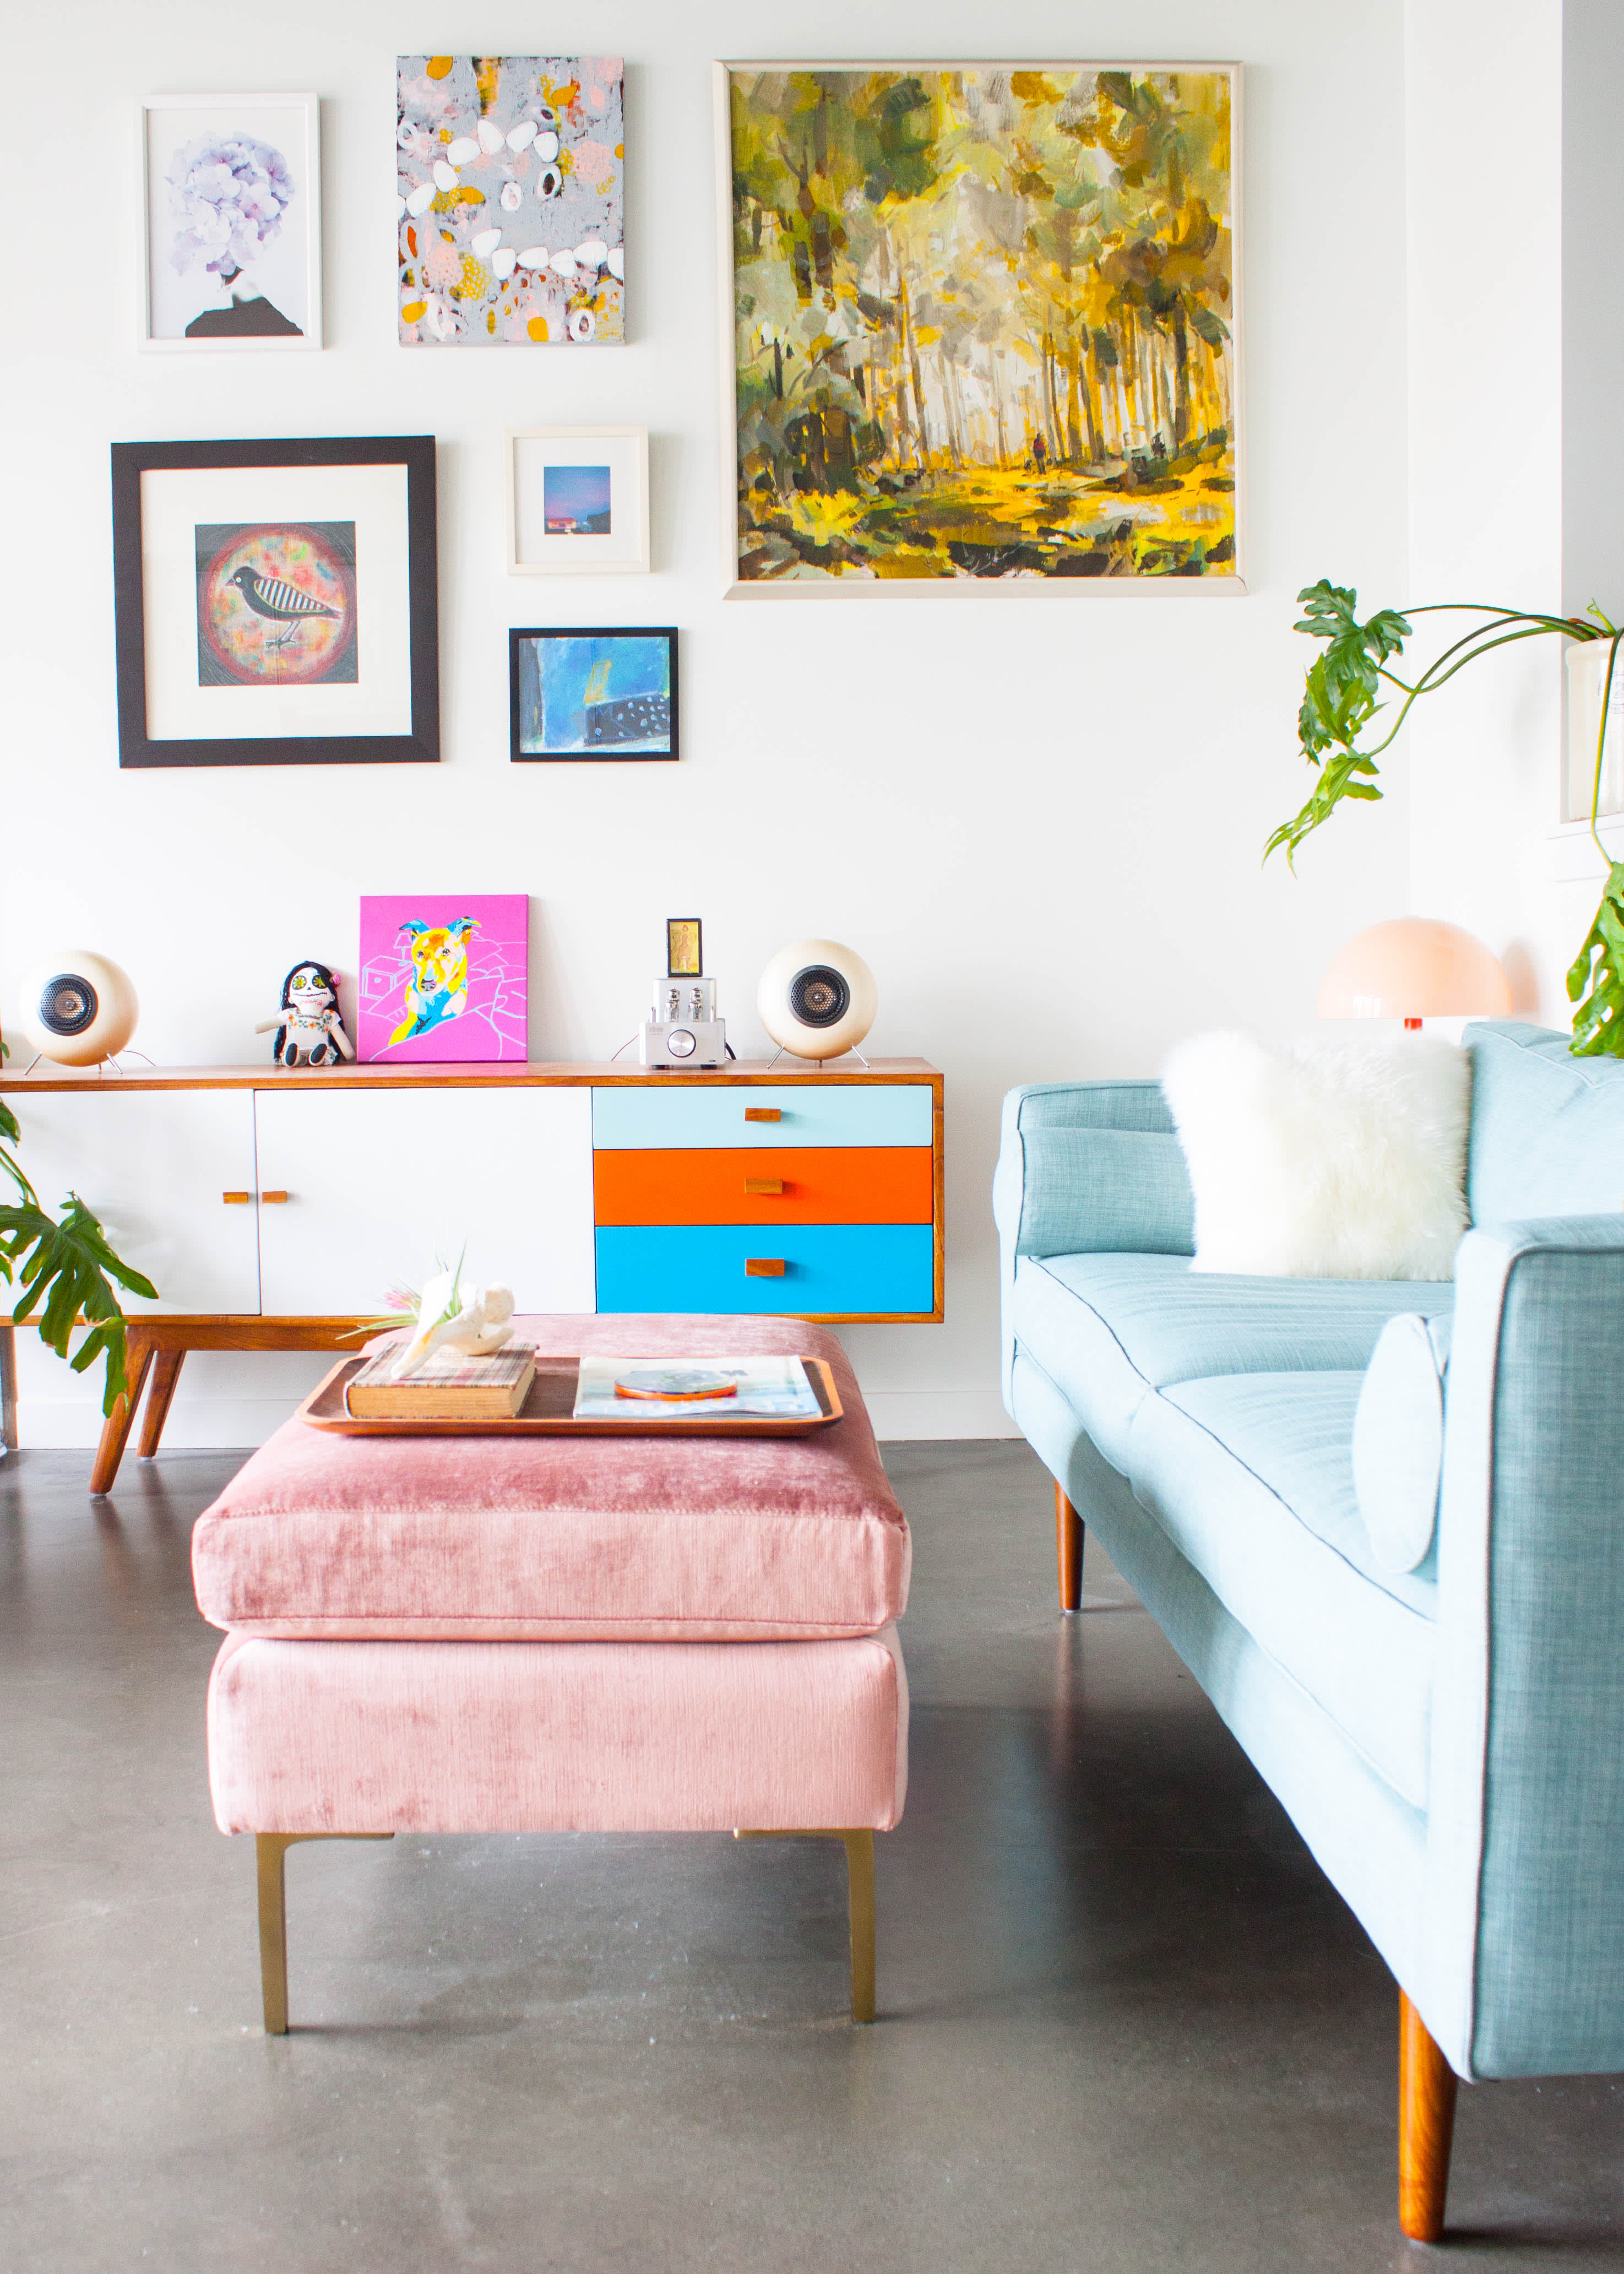 100 Ideas & Inspirations for Small Spaces   Apartment Therapy